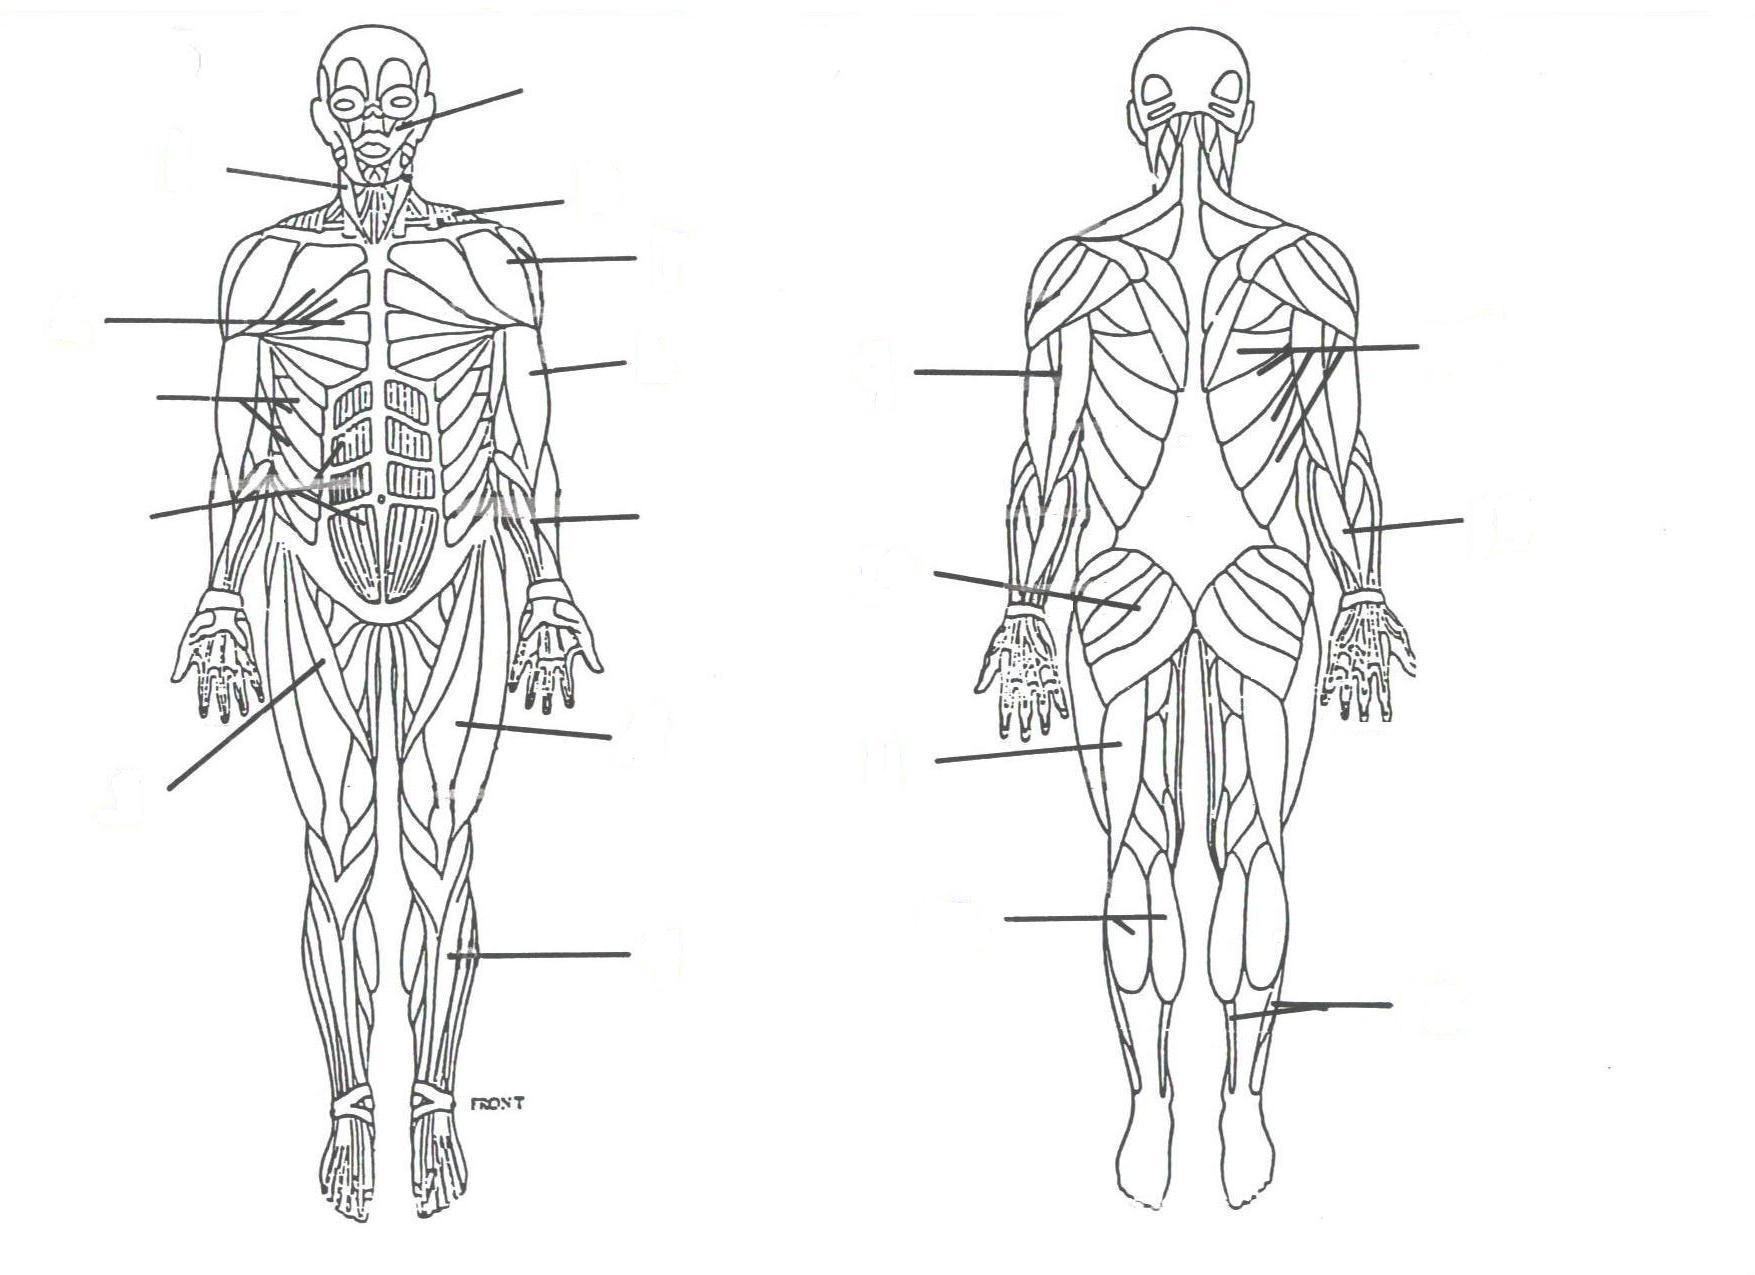 Muscular System Diagram Labeled For Kids Muscular System